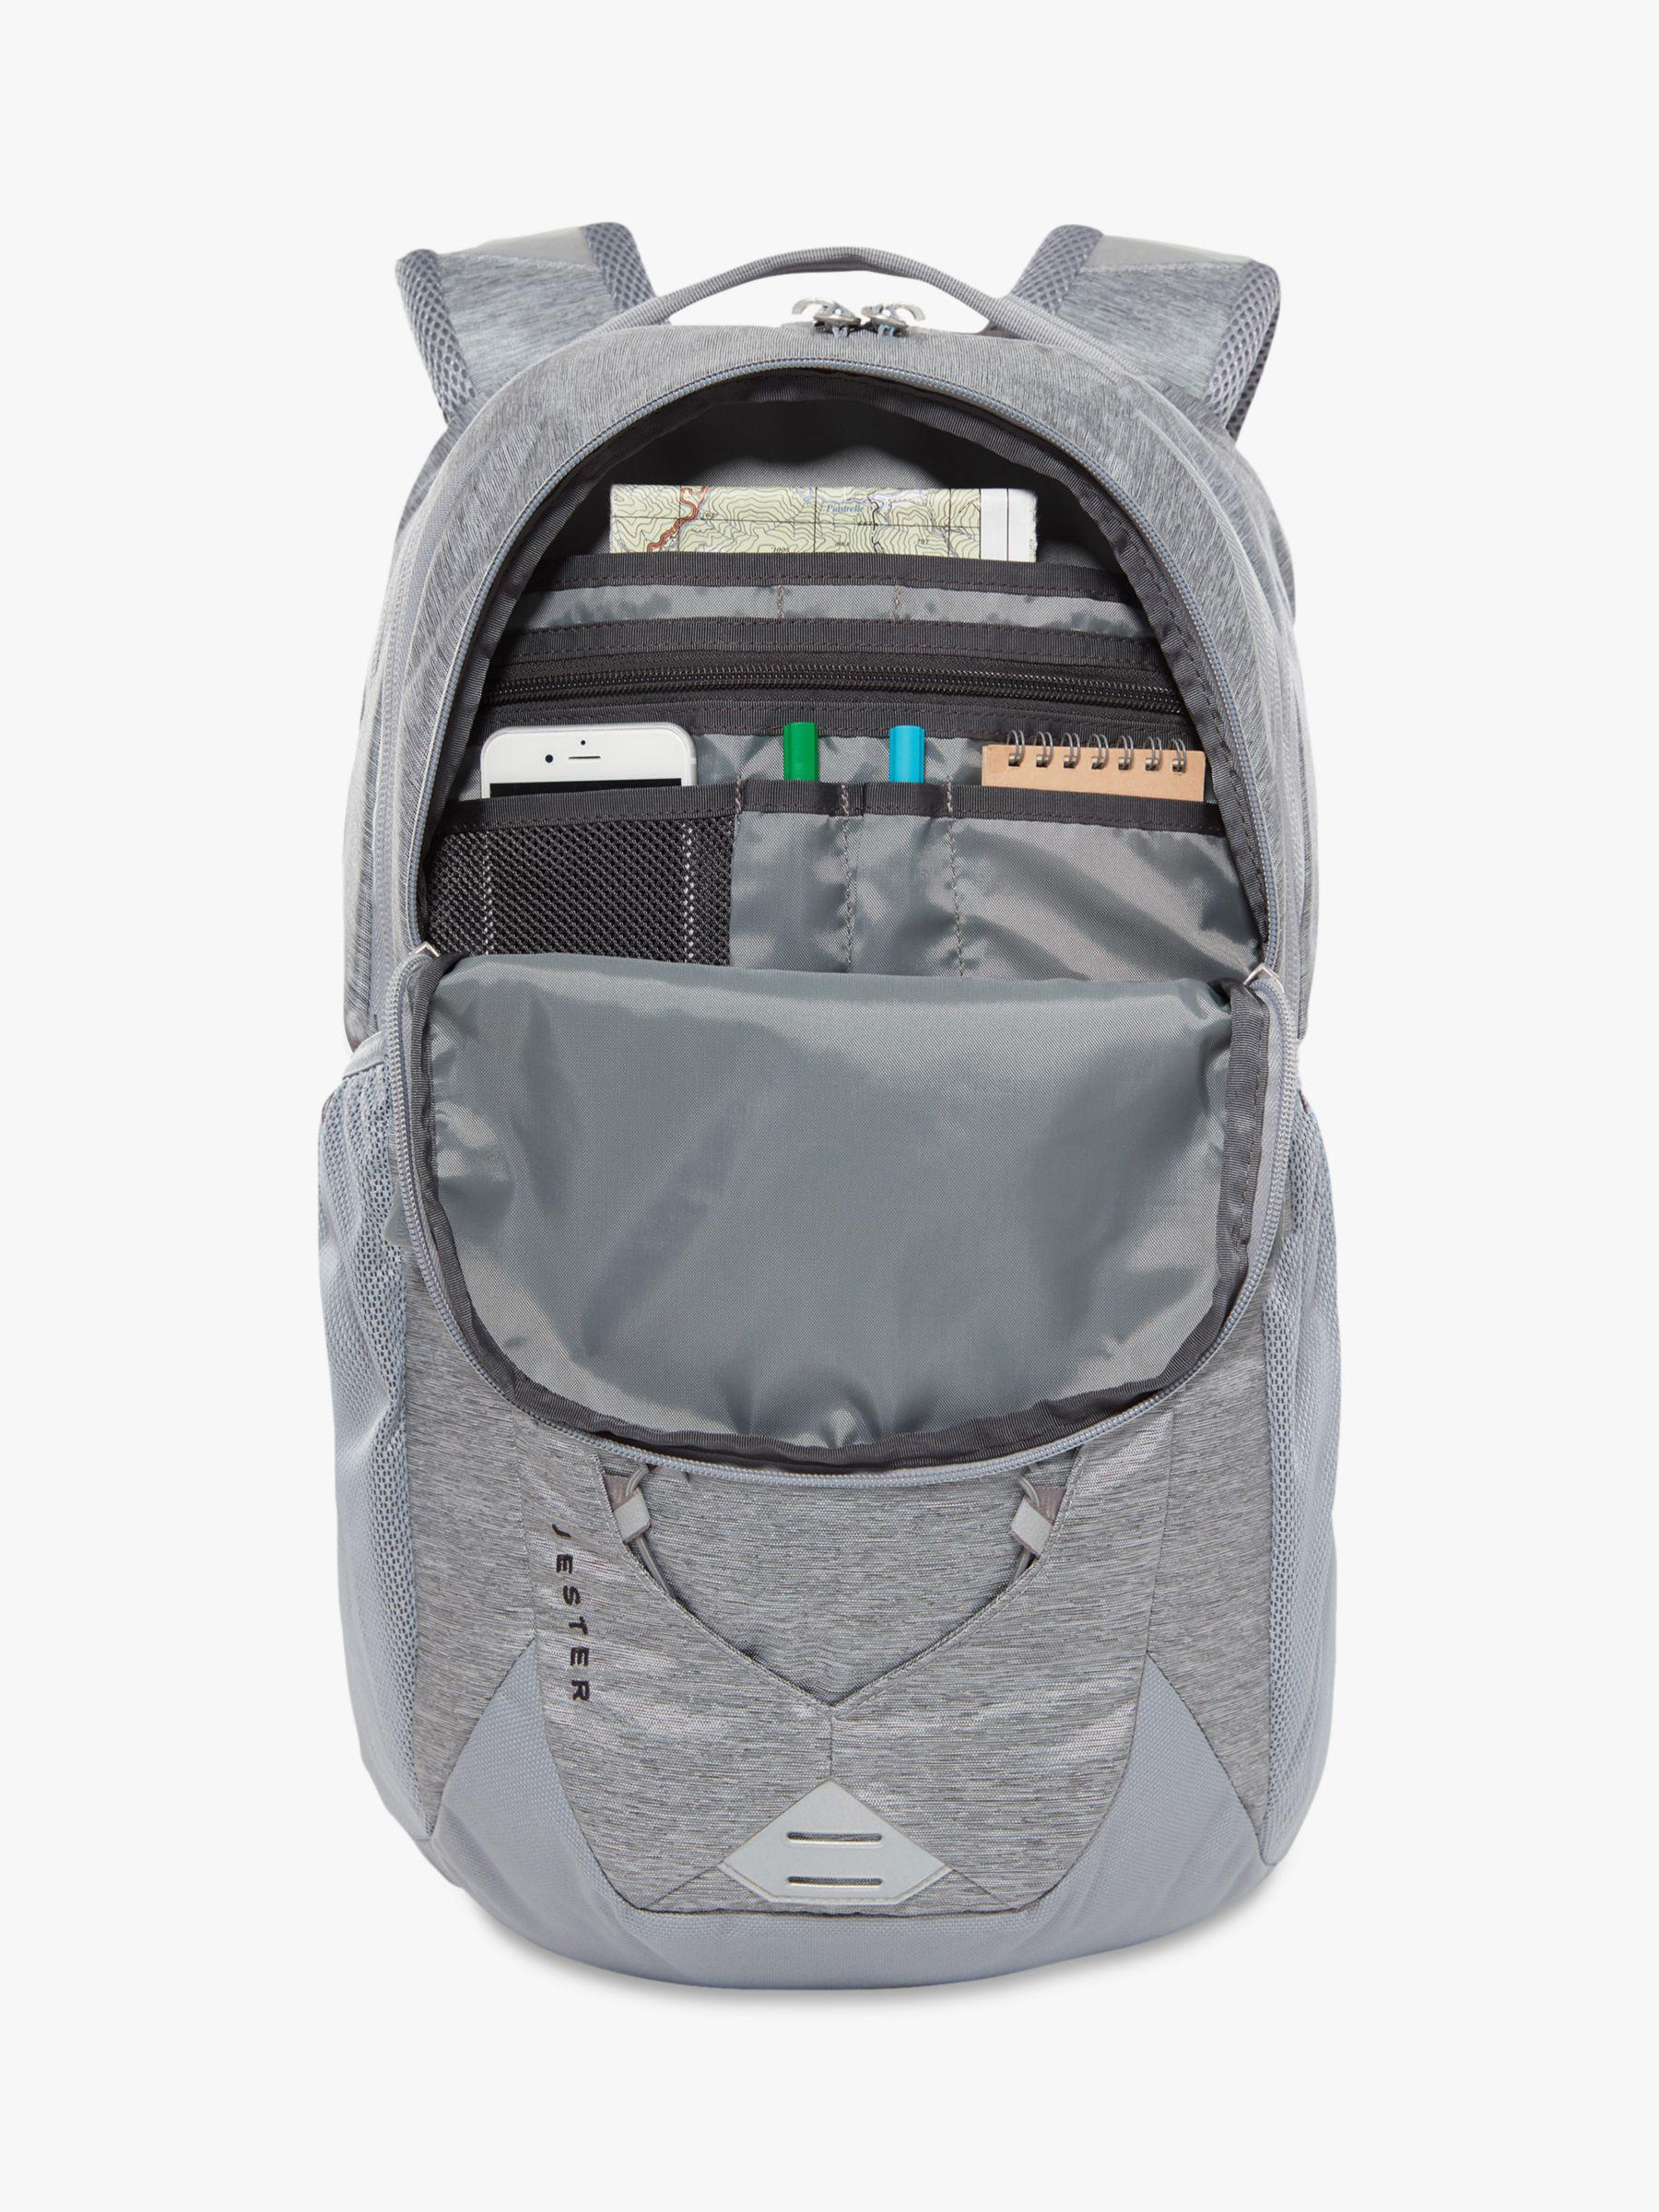 afb43cc48da9 The North Face Jester Backpack in Gray for Men - Lyst